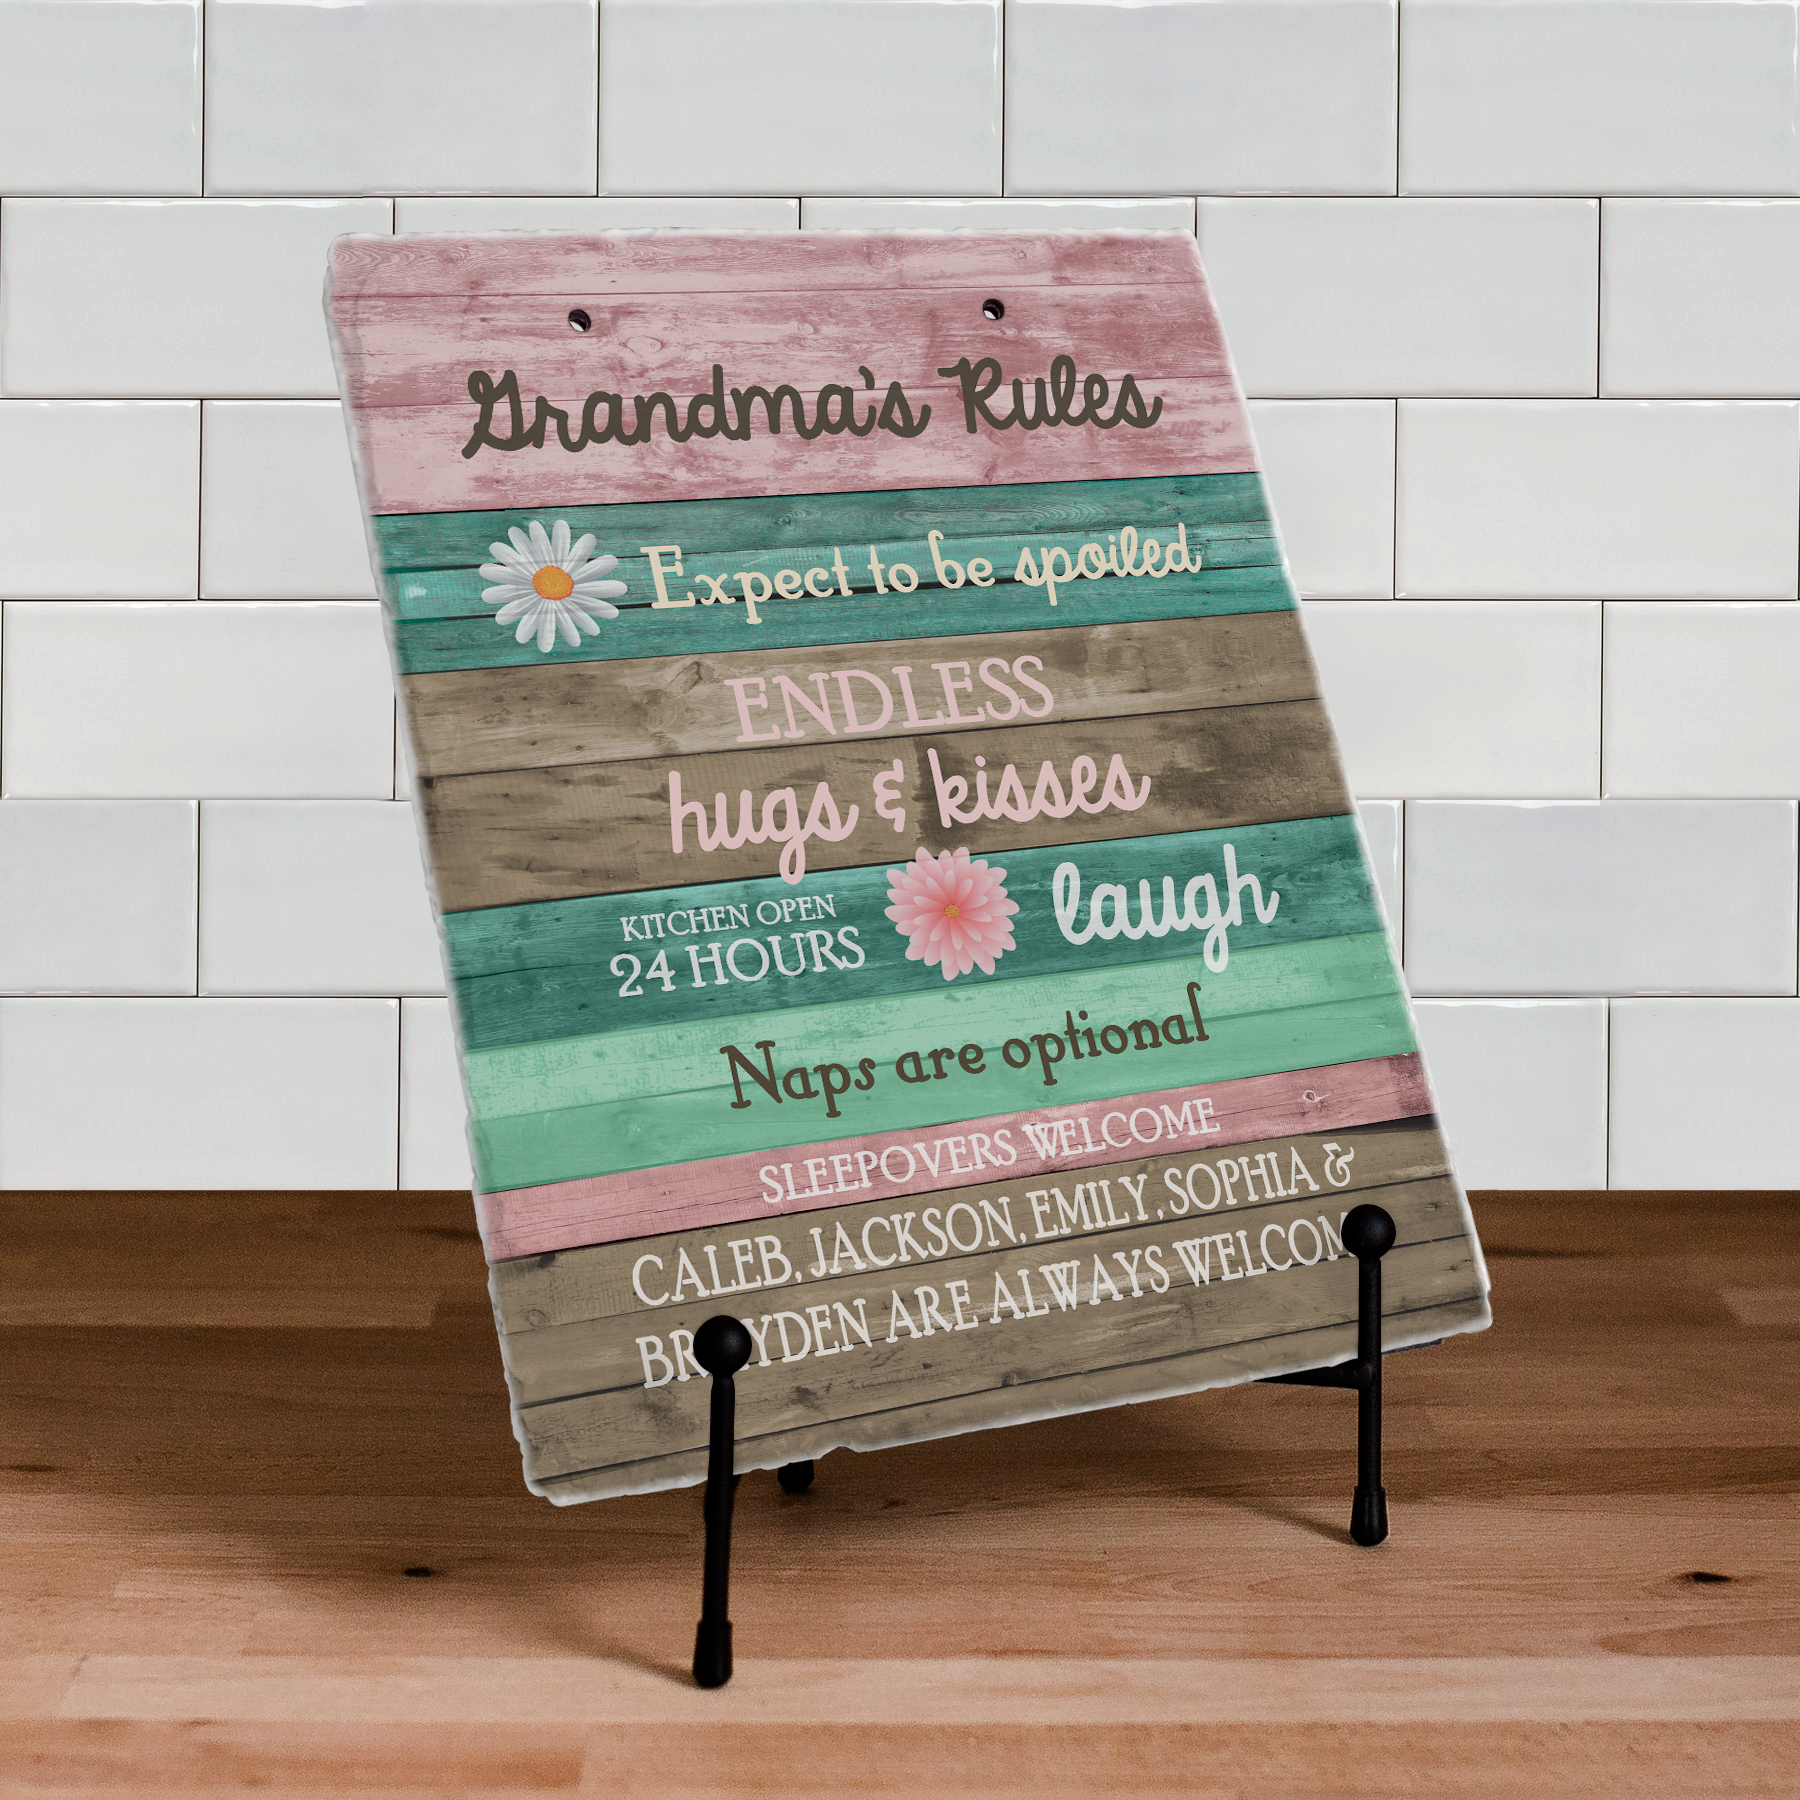 Personalized Grandma's Rules Slate Plaque | Personalized Gifts for Grandma